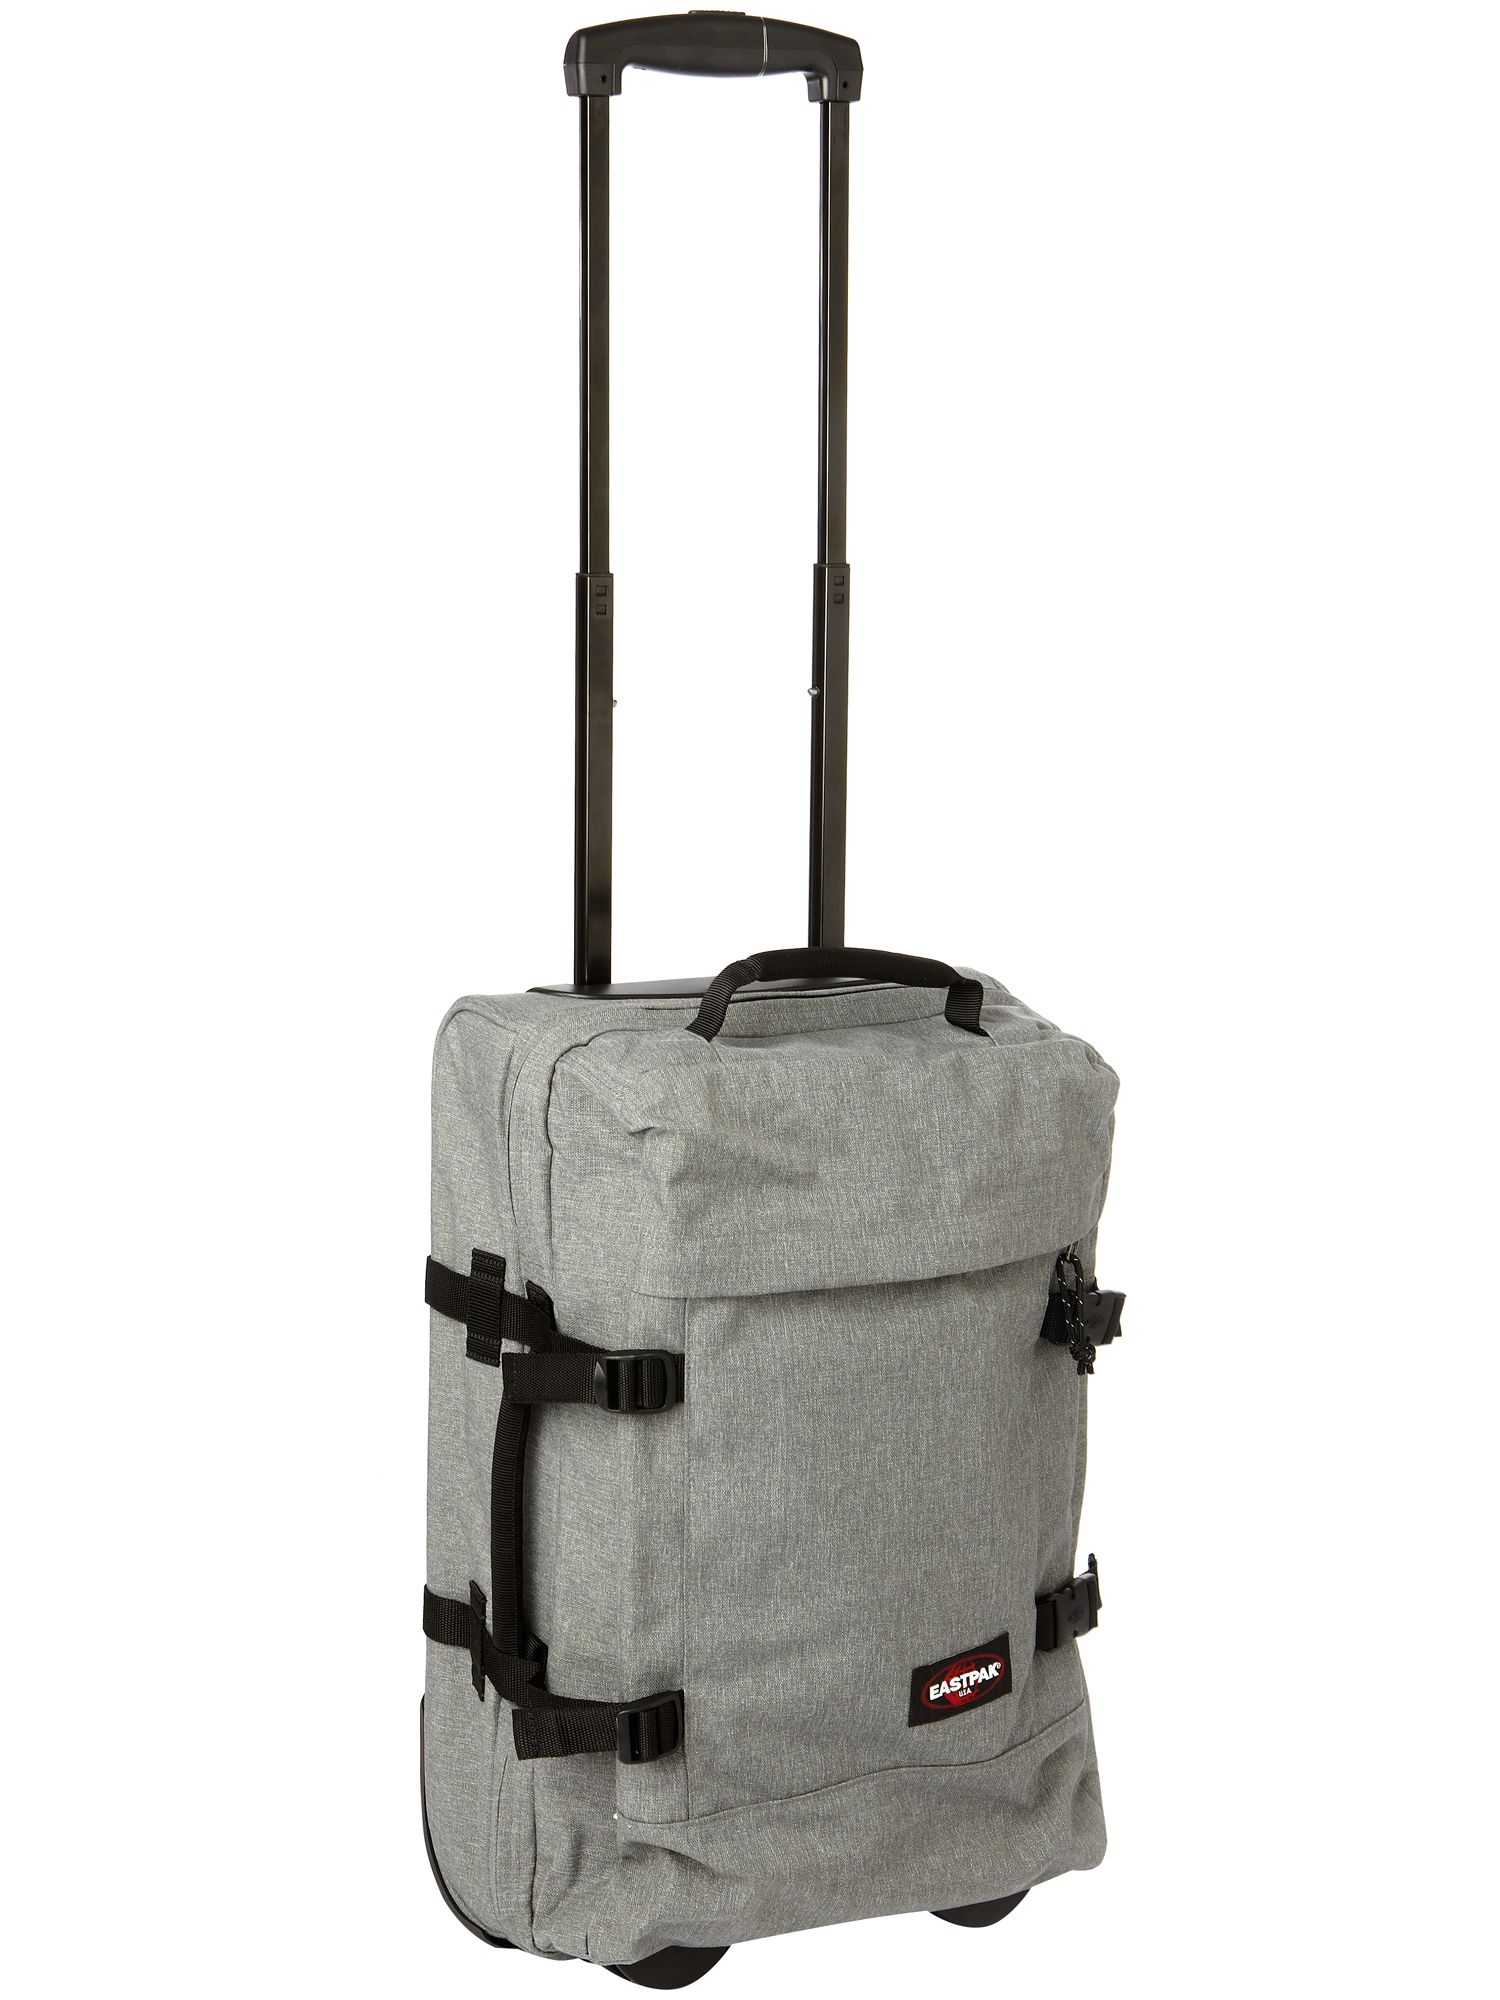 Transfer Small Wheeled Duffle